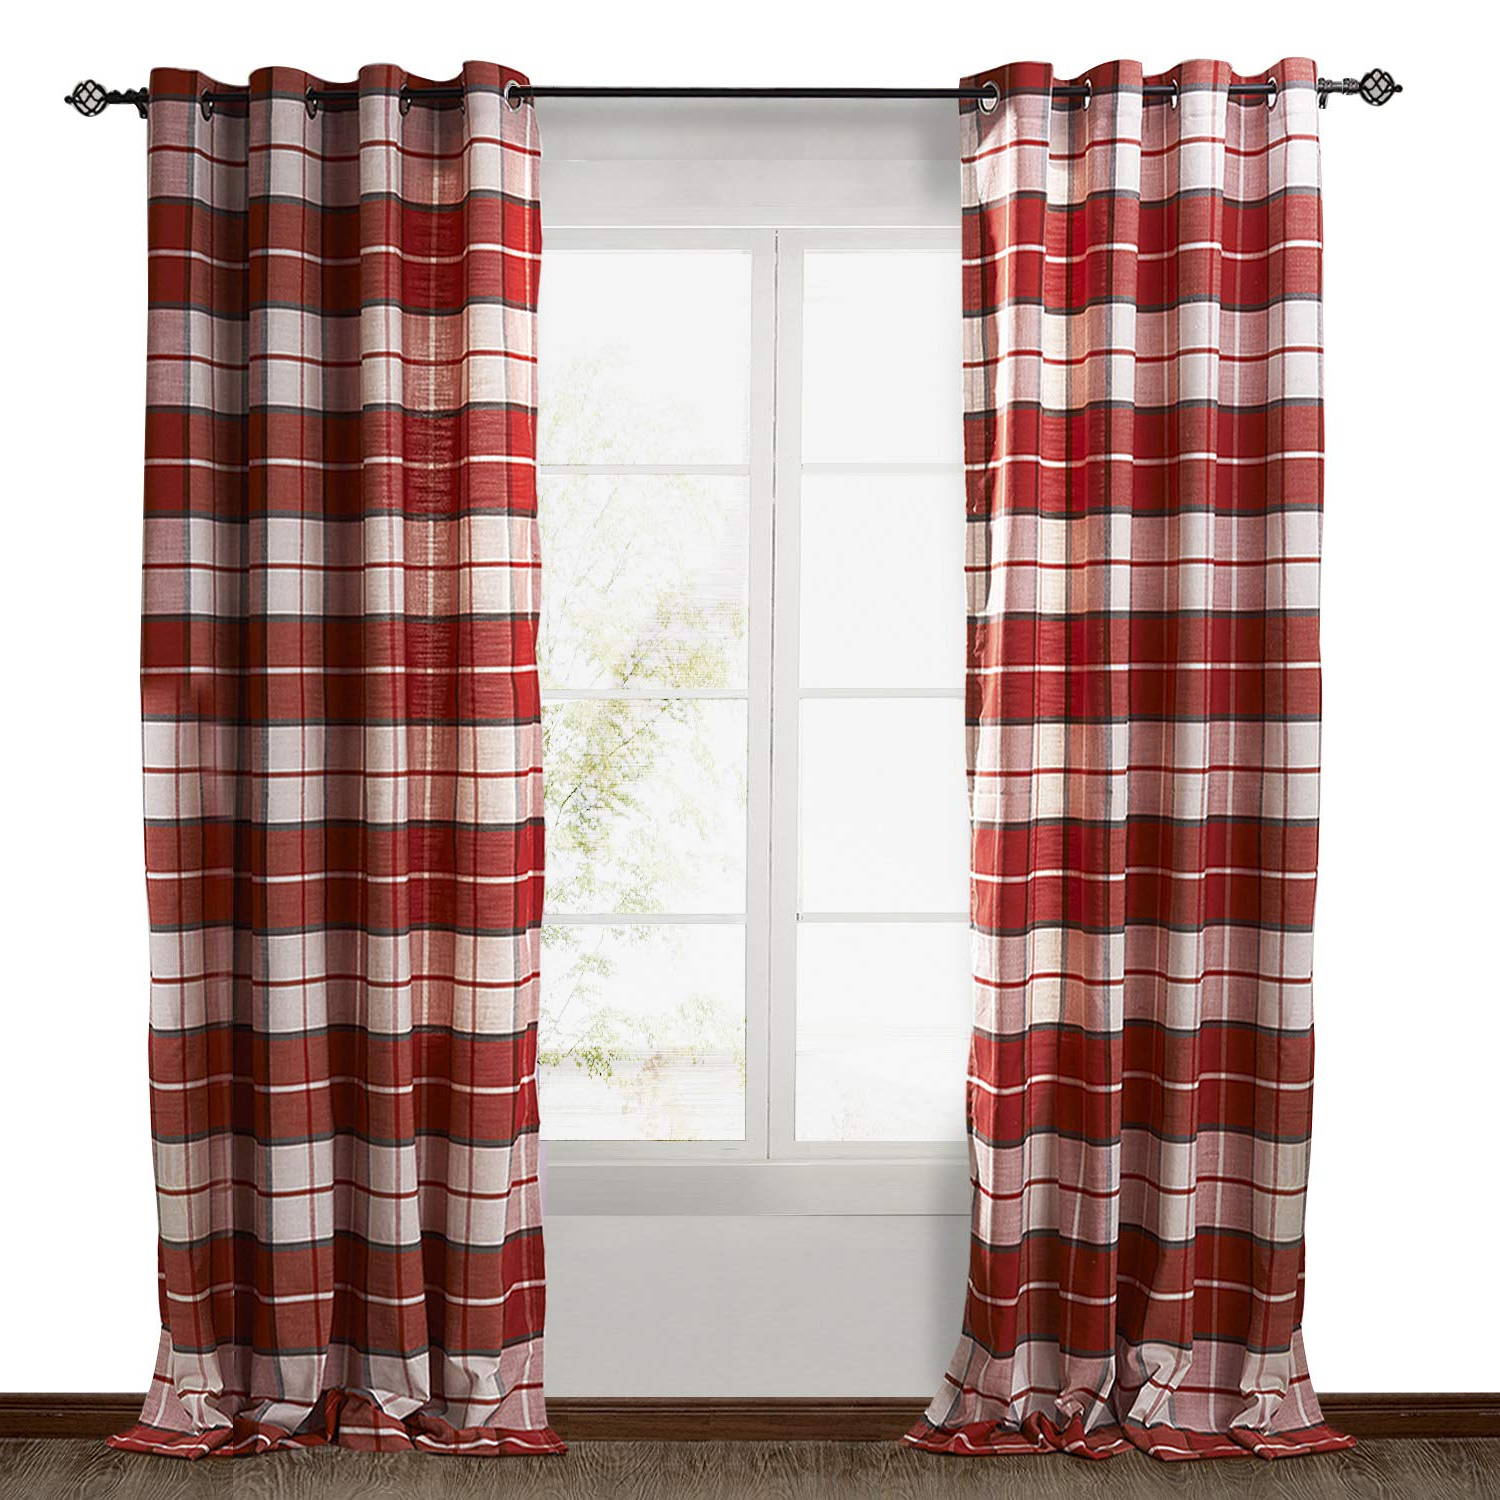 Most Popular Chadmade Check Plaid Cotton Nickel Grommet Eyelet Blackout Lined Window Curtain Panel Drapes (1 Panel) Red 50wx96l Inch Throughout Burgundy Cotton Blend Classic Checkered Decorative Window Curtains (View 13 of 20)